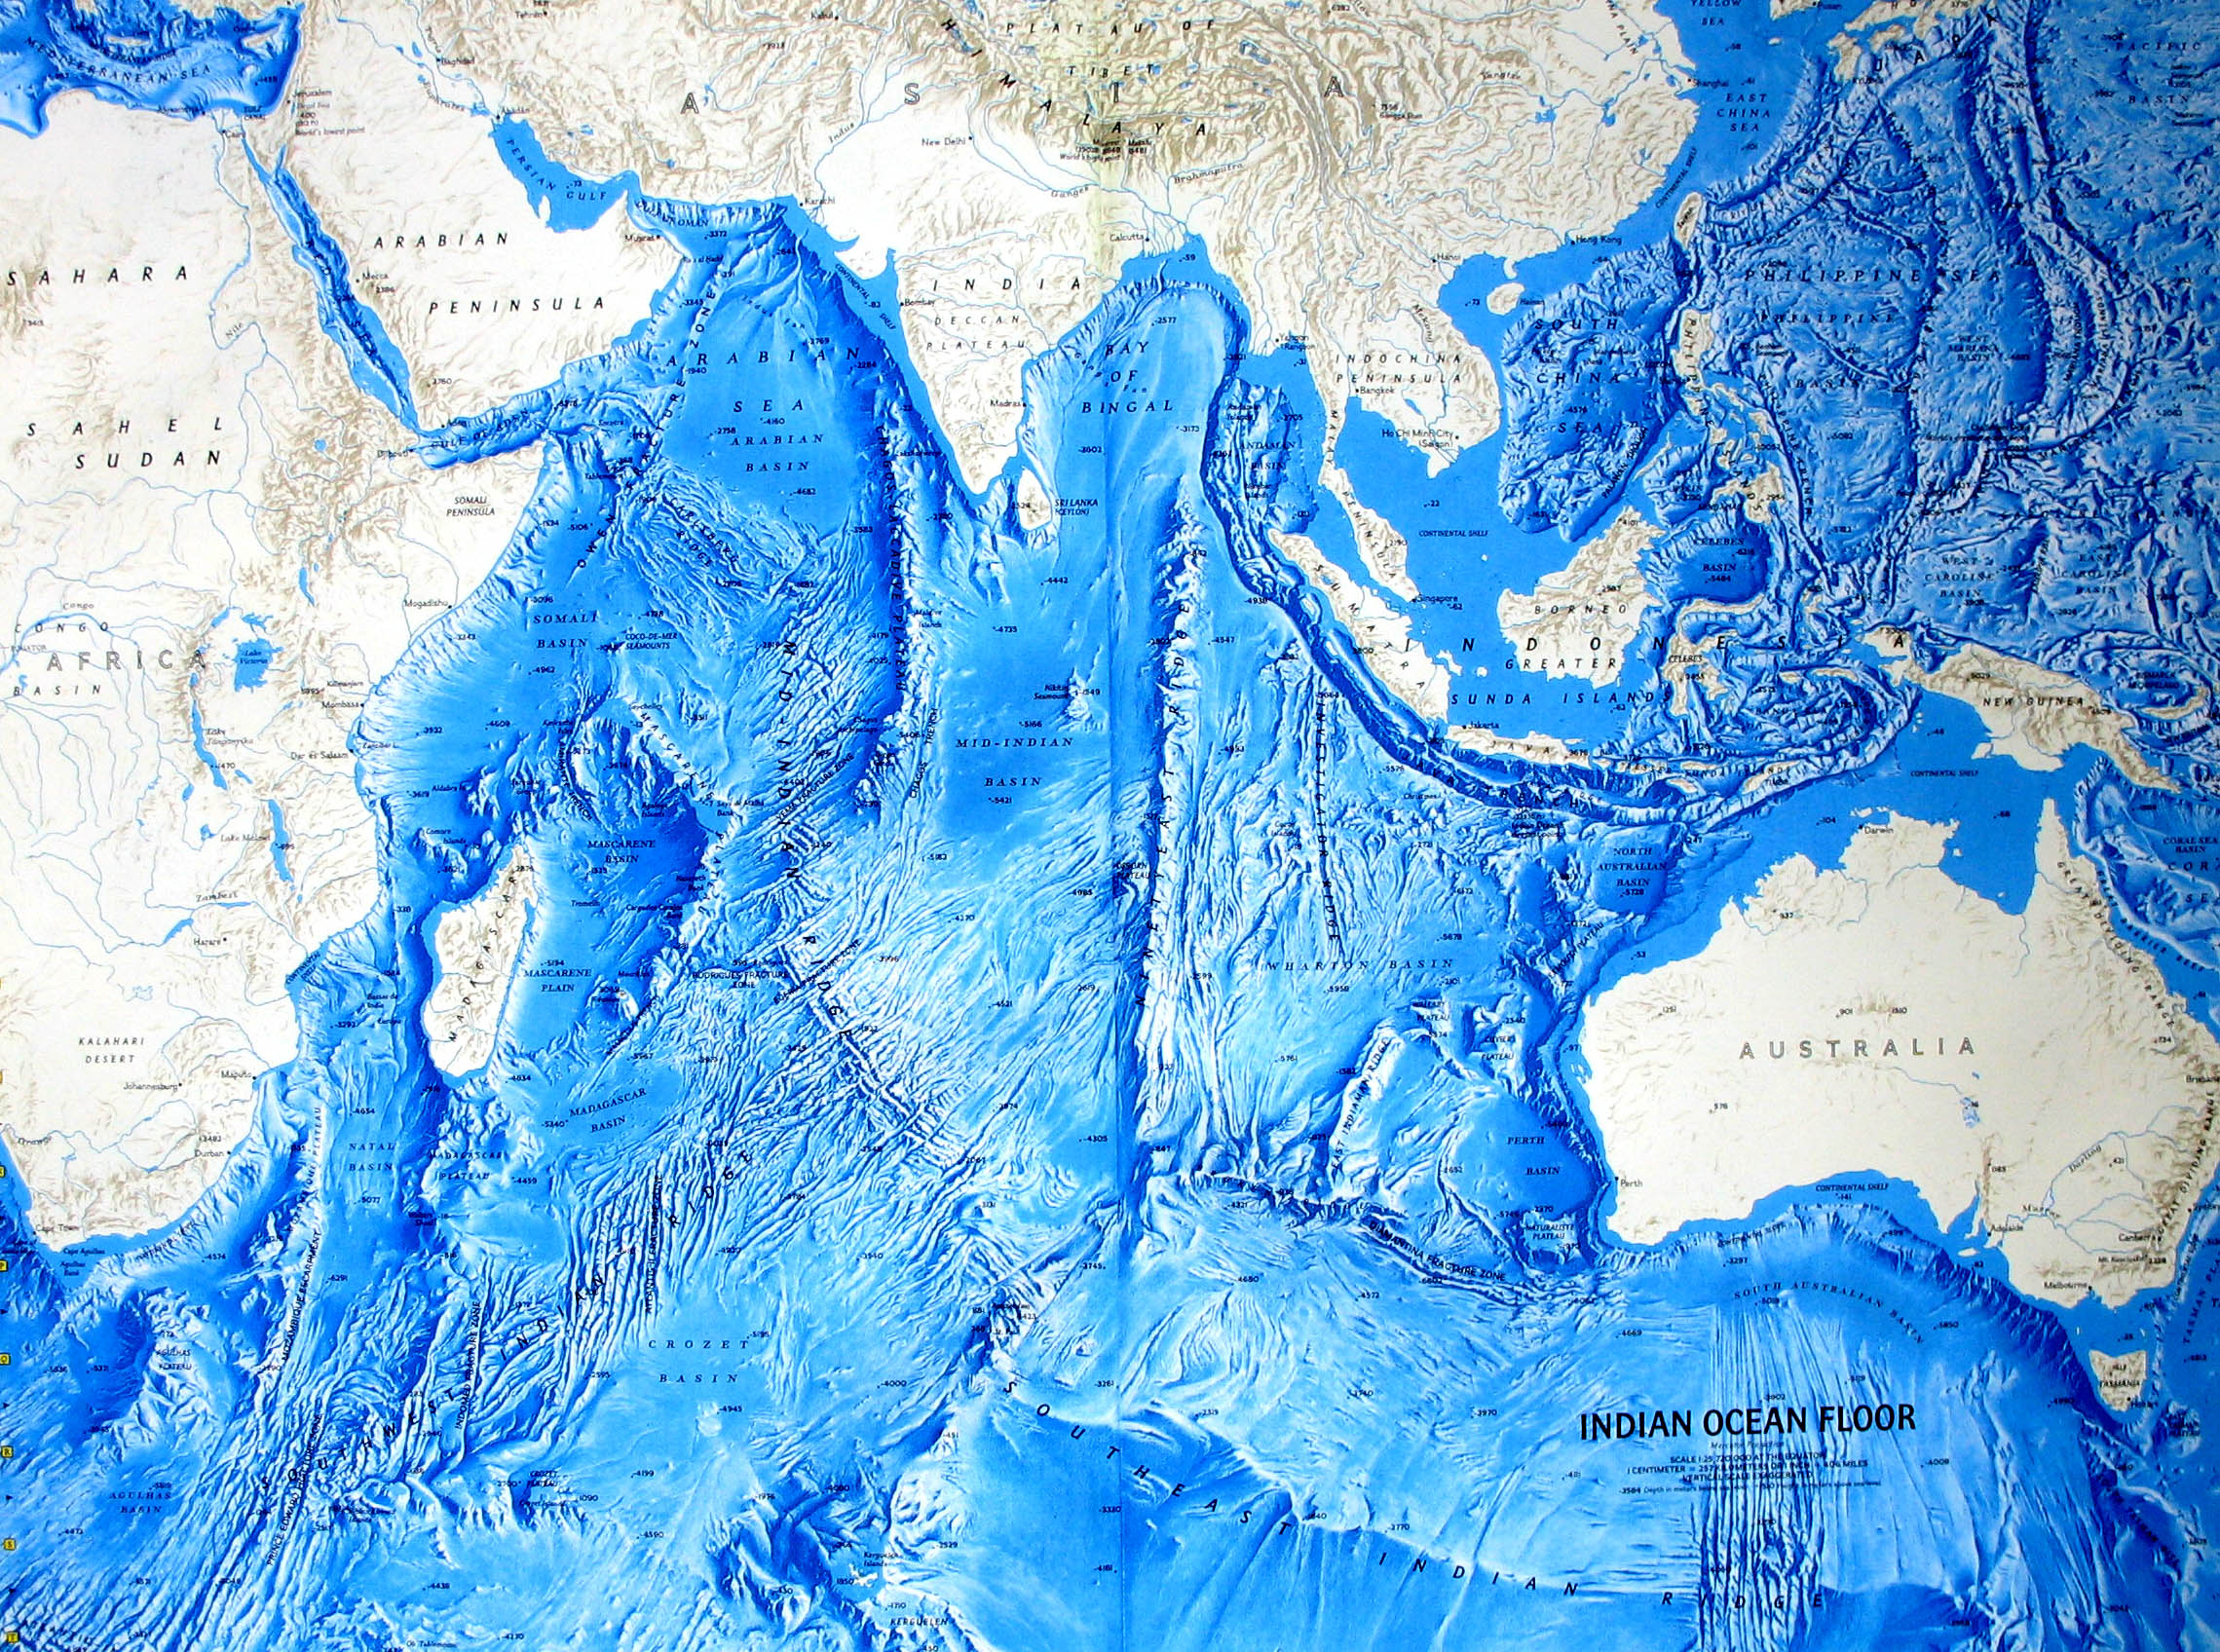 Ocean floor relief maps detailed maps of sea and ocean depths detailed maps of ocean floor relief gumiabroncs Images